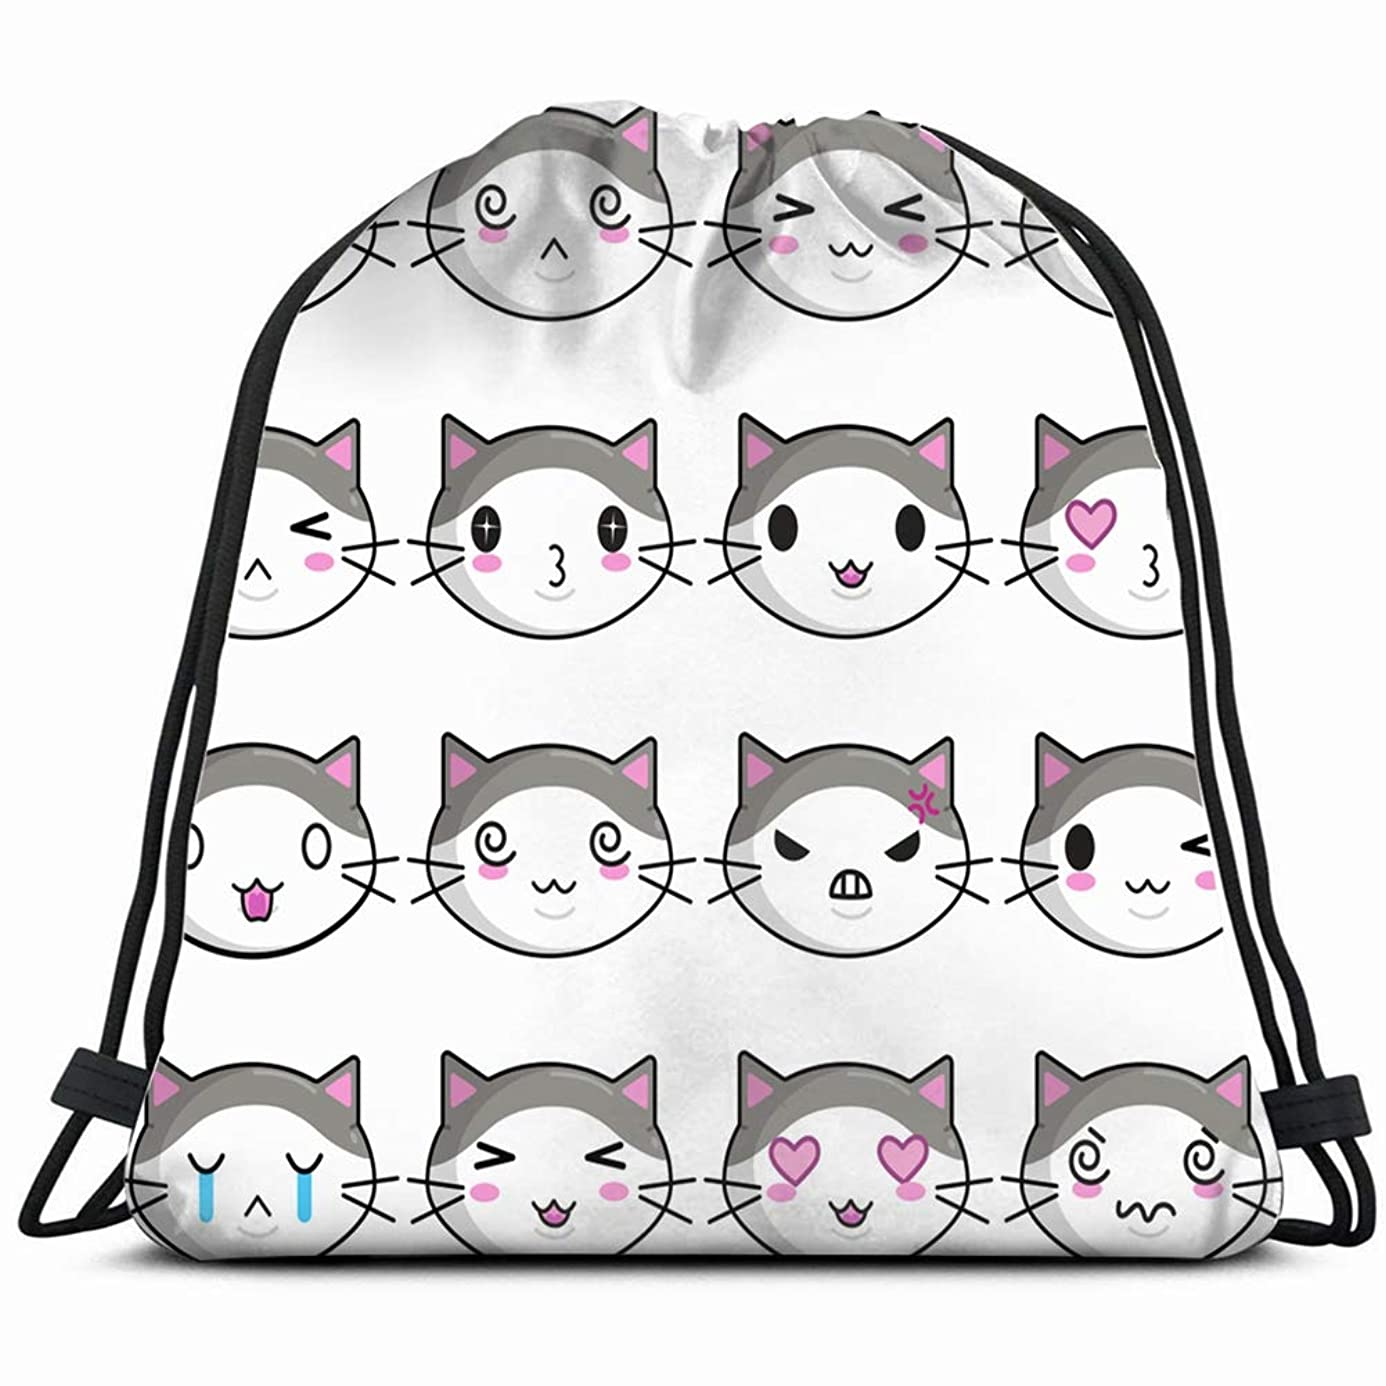 cute kawai cat design posters prints animals wildlife anger signs symbols Drawstring Backpack Gym Sack Lightweight Bag Water Resistant Gym Backpack for Women&Men for Sports,Travelling,Hiking,Camping,S